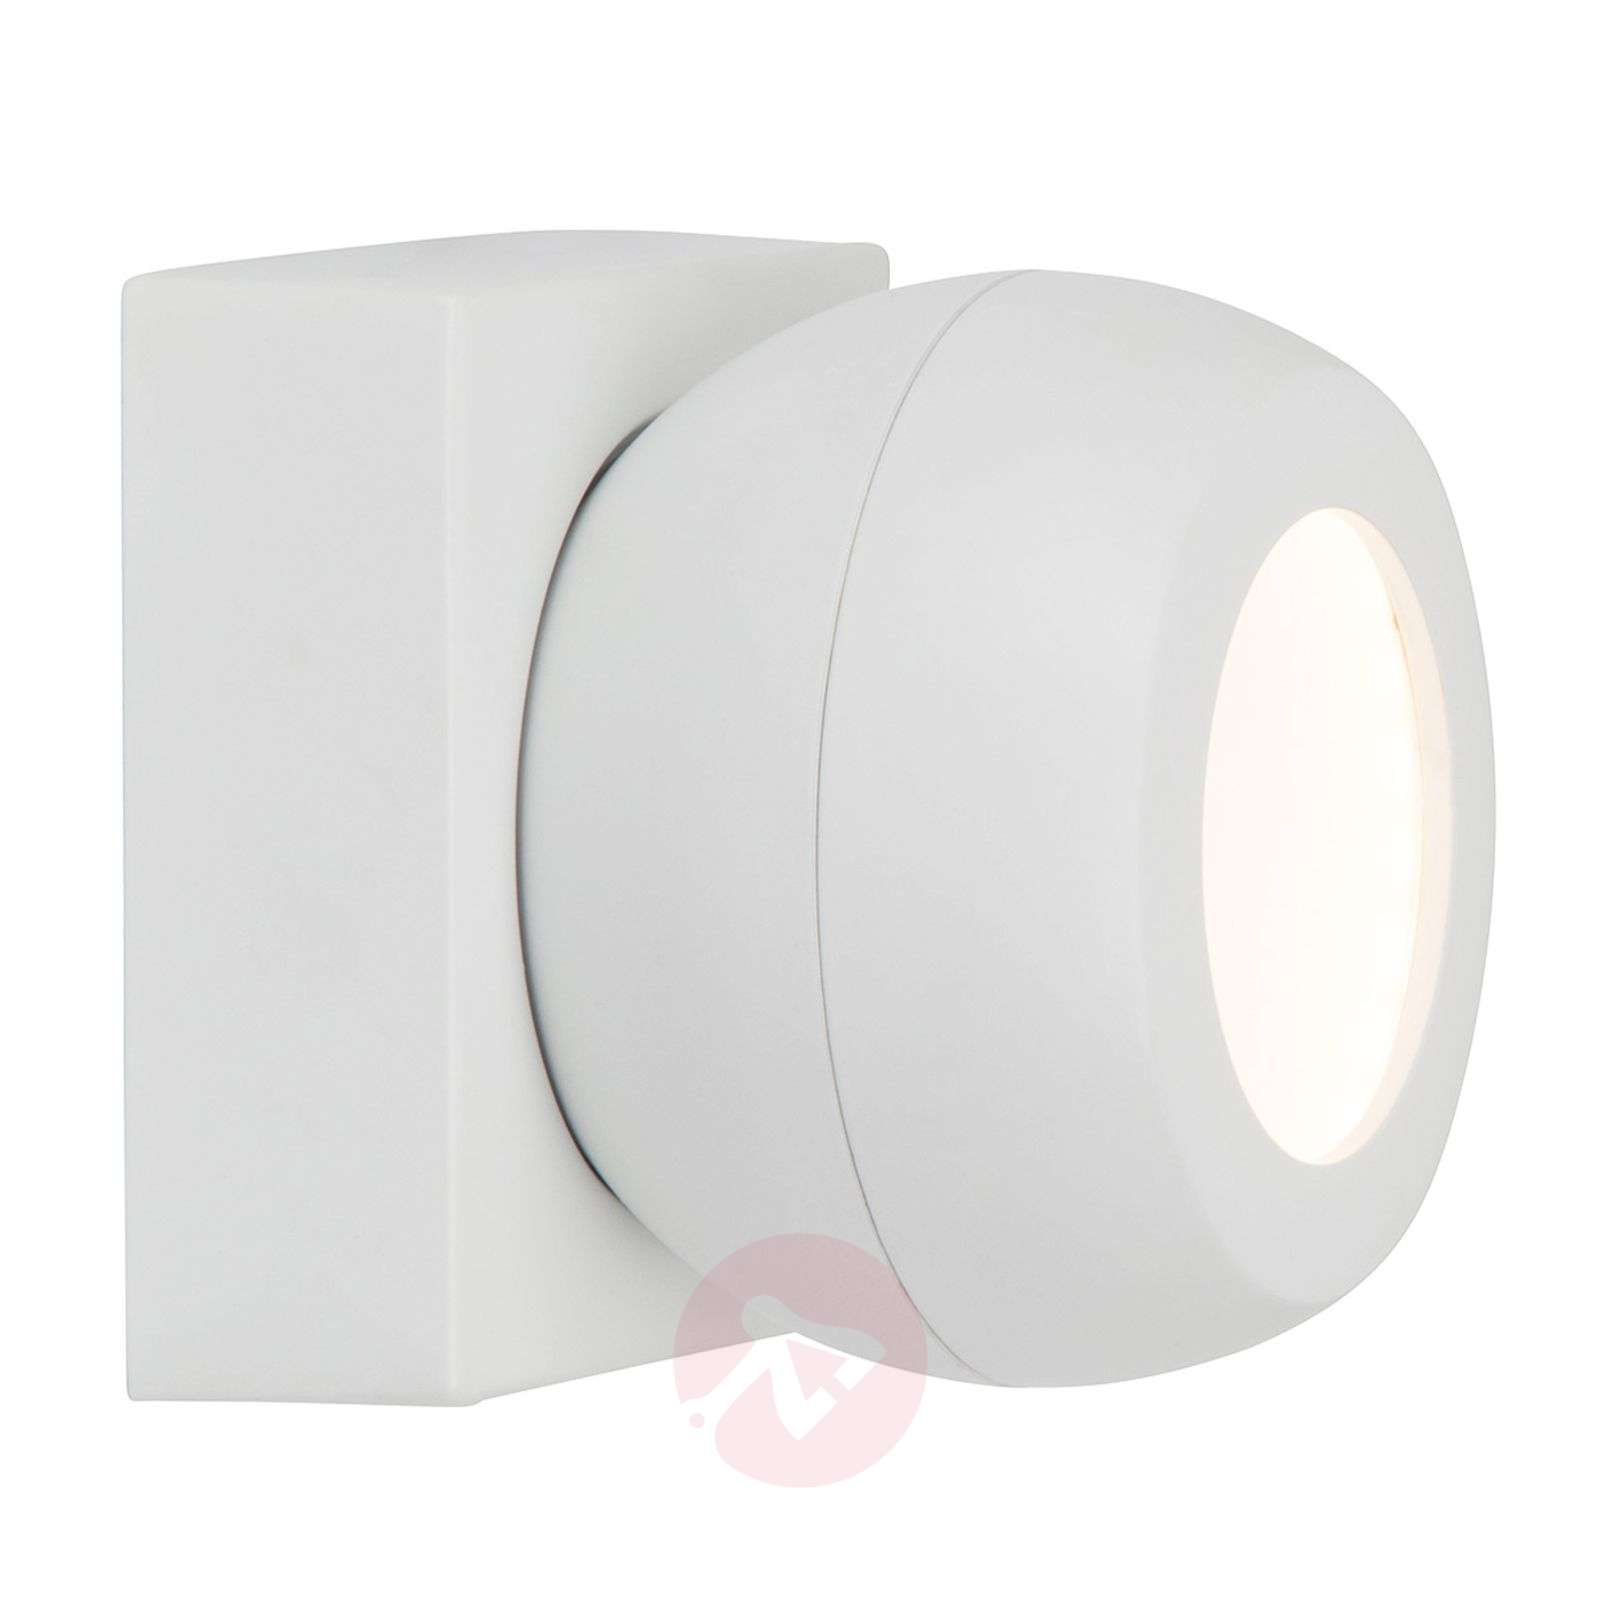 Balleo a dimmable LED wall spotlight by AEG-3057041-01